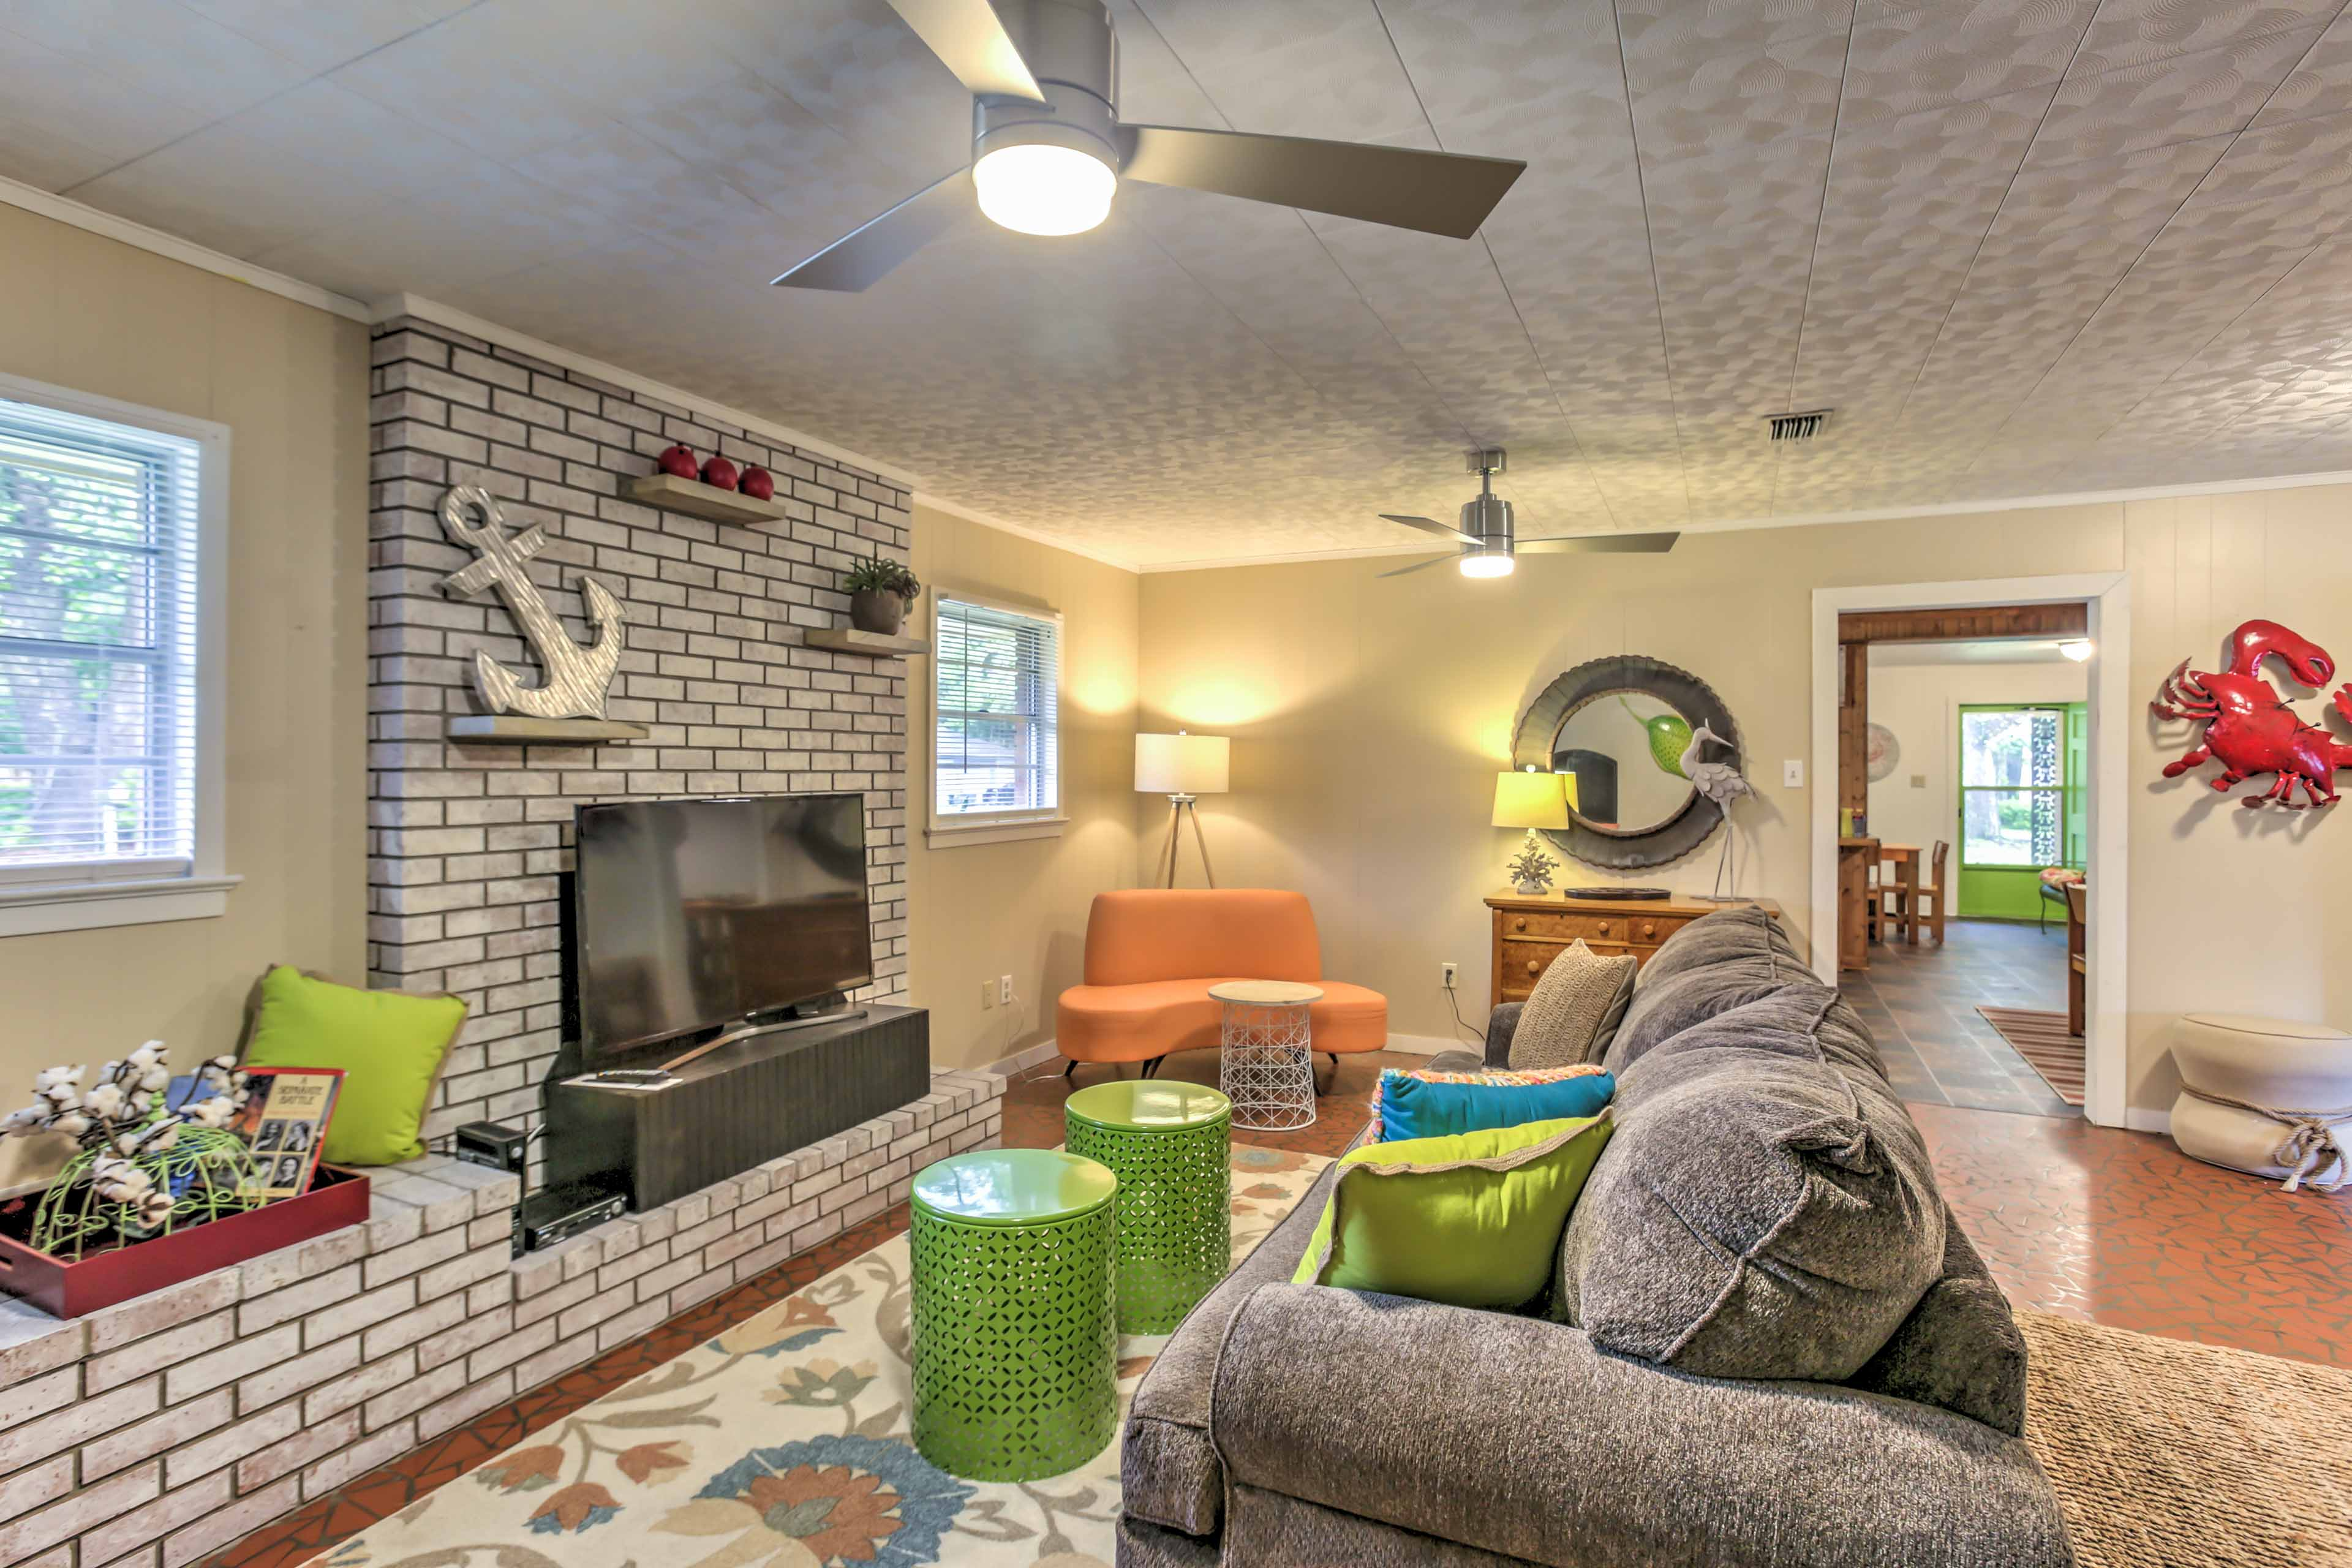 Make yourself at home in this inviting living room, brightly decorated with vibrant colors and beach-themed accents.